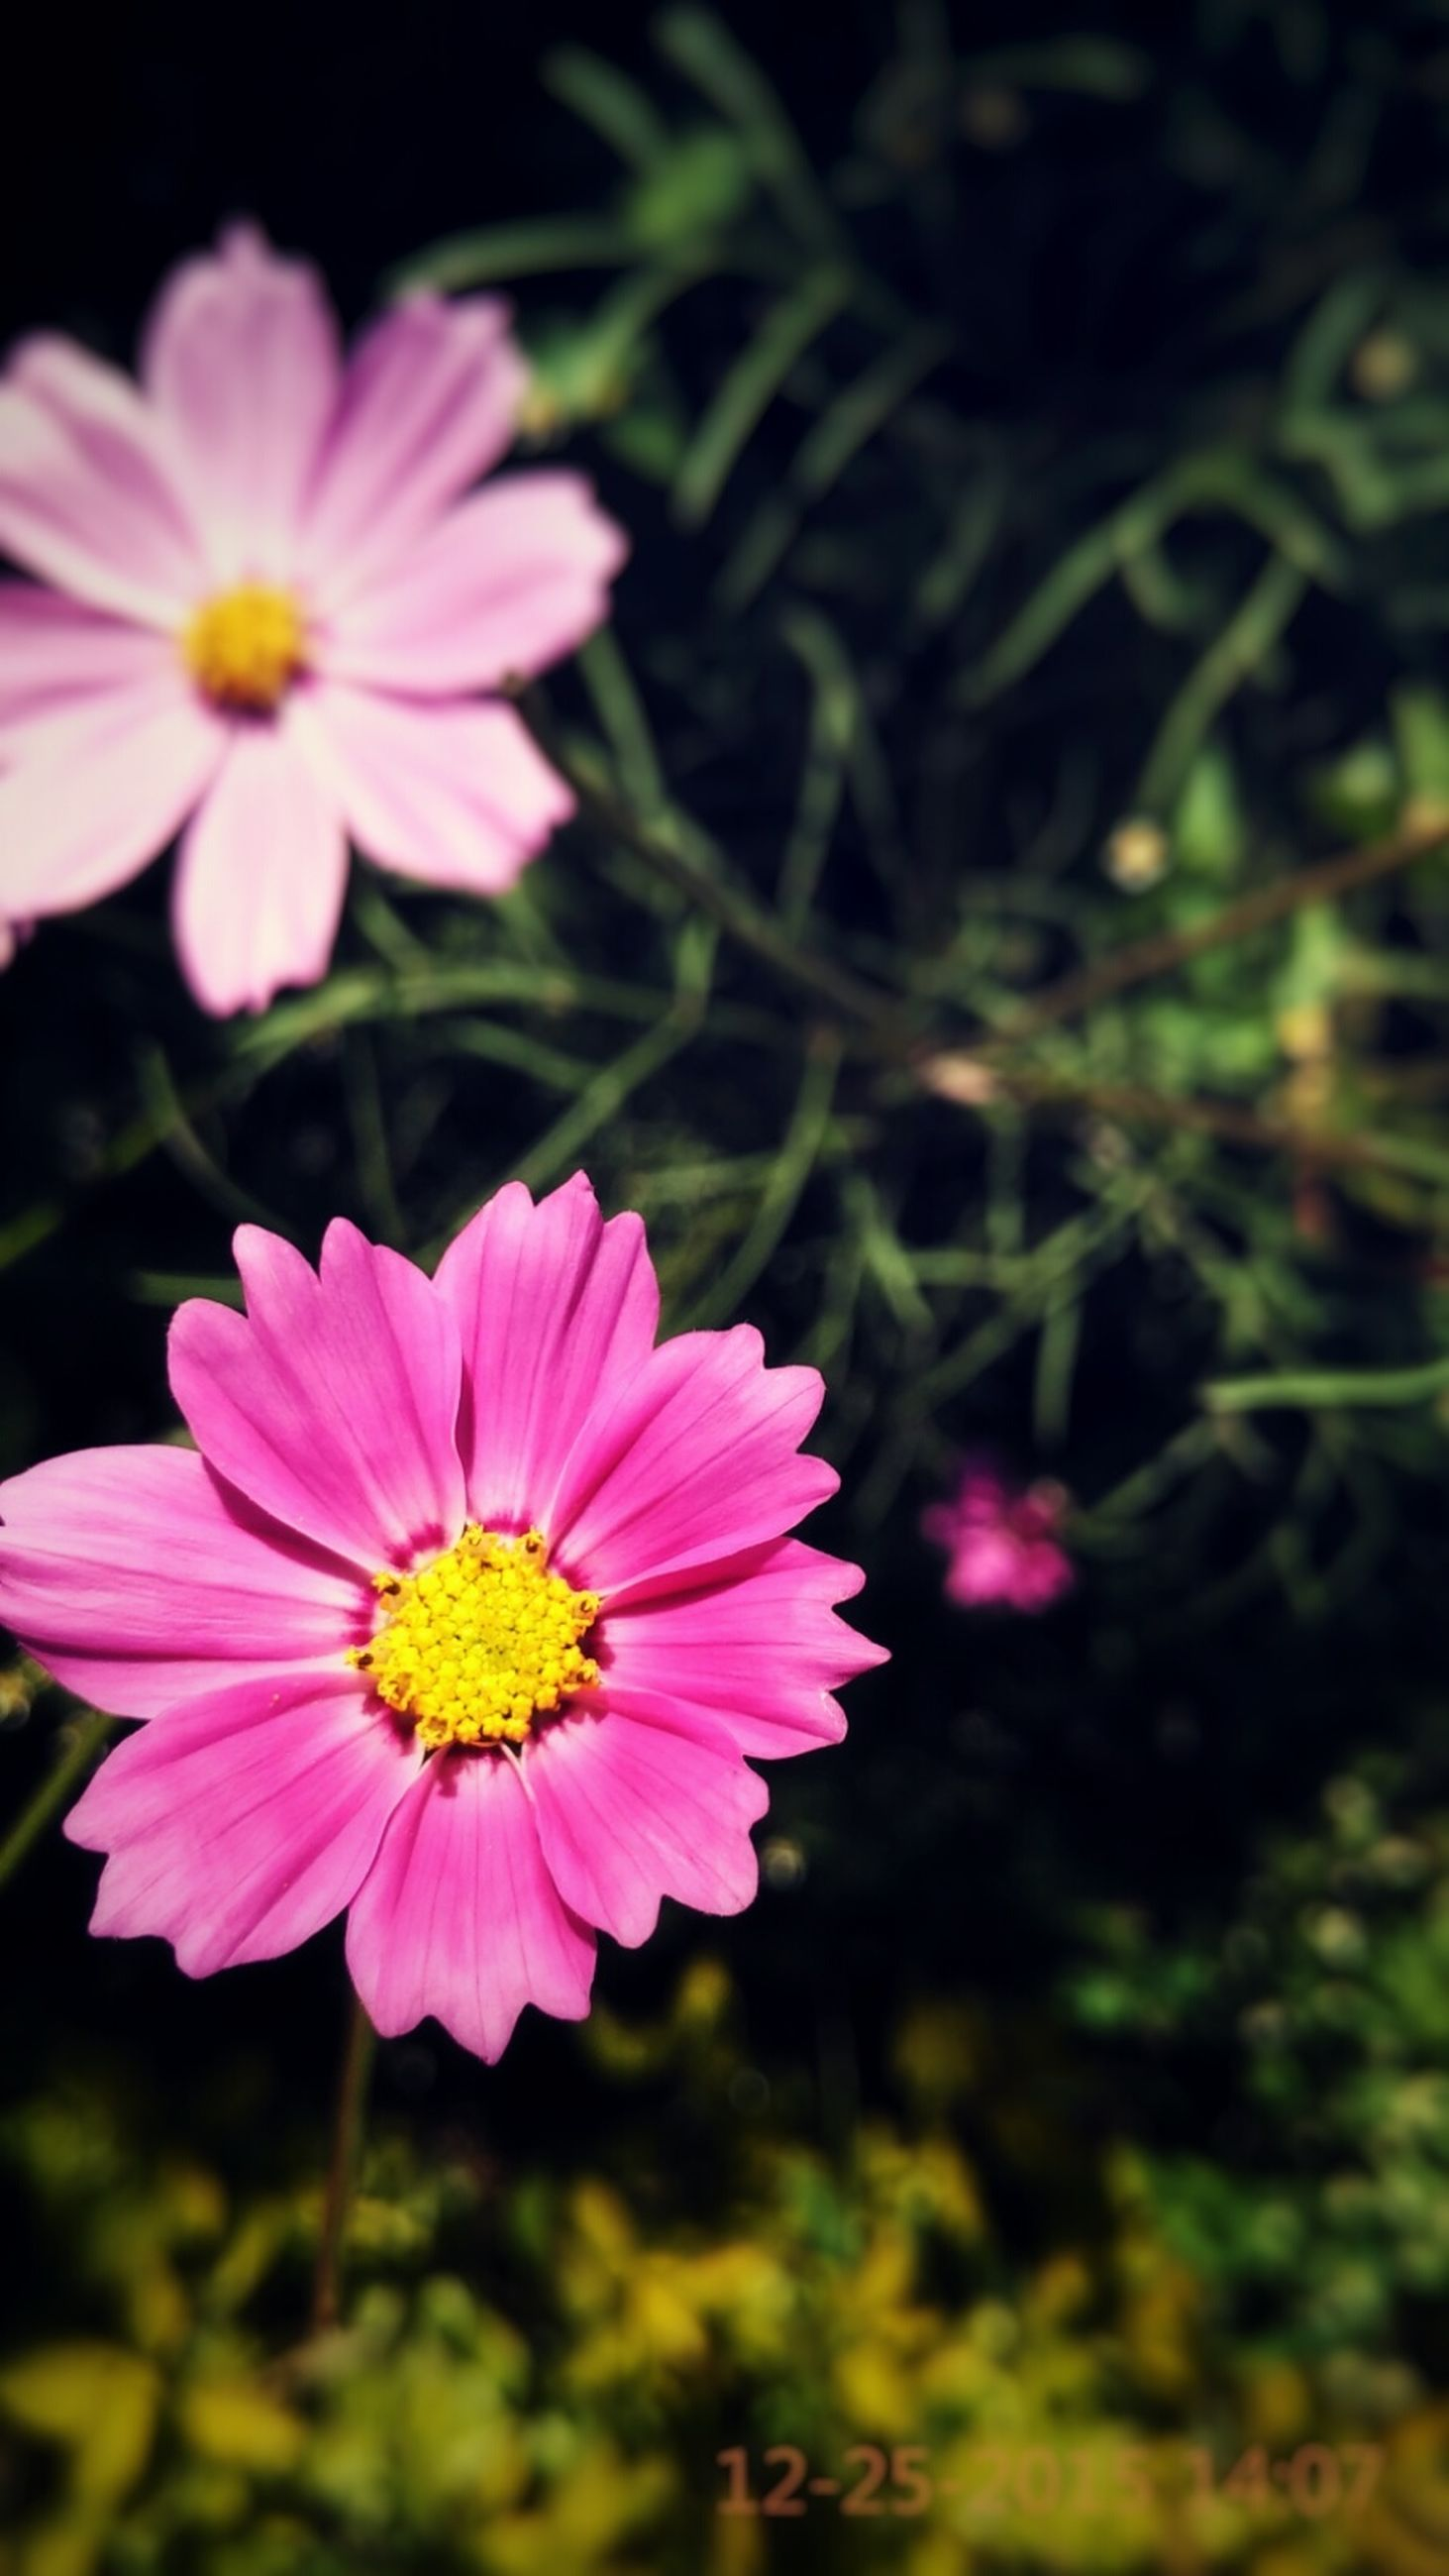 flower, freshness, petal, fragility, flower head, beauty in nature, growth, blooming, focus on foreground, pink color, nature, close-up, pollen, plant, in bloom, blossom, park - man made space, red, outdoors, day